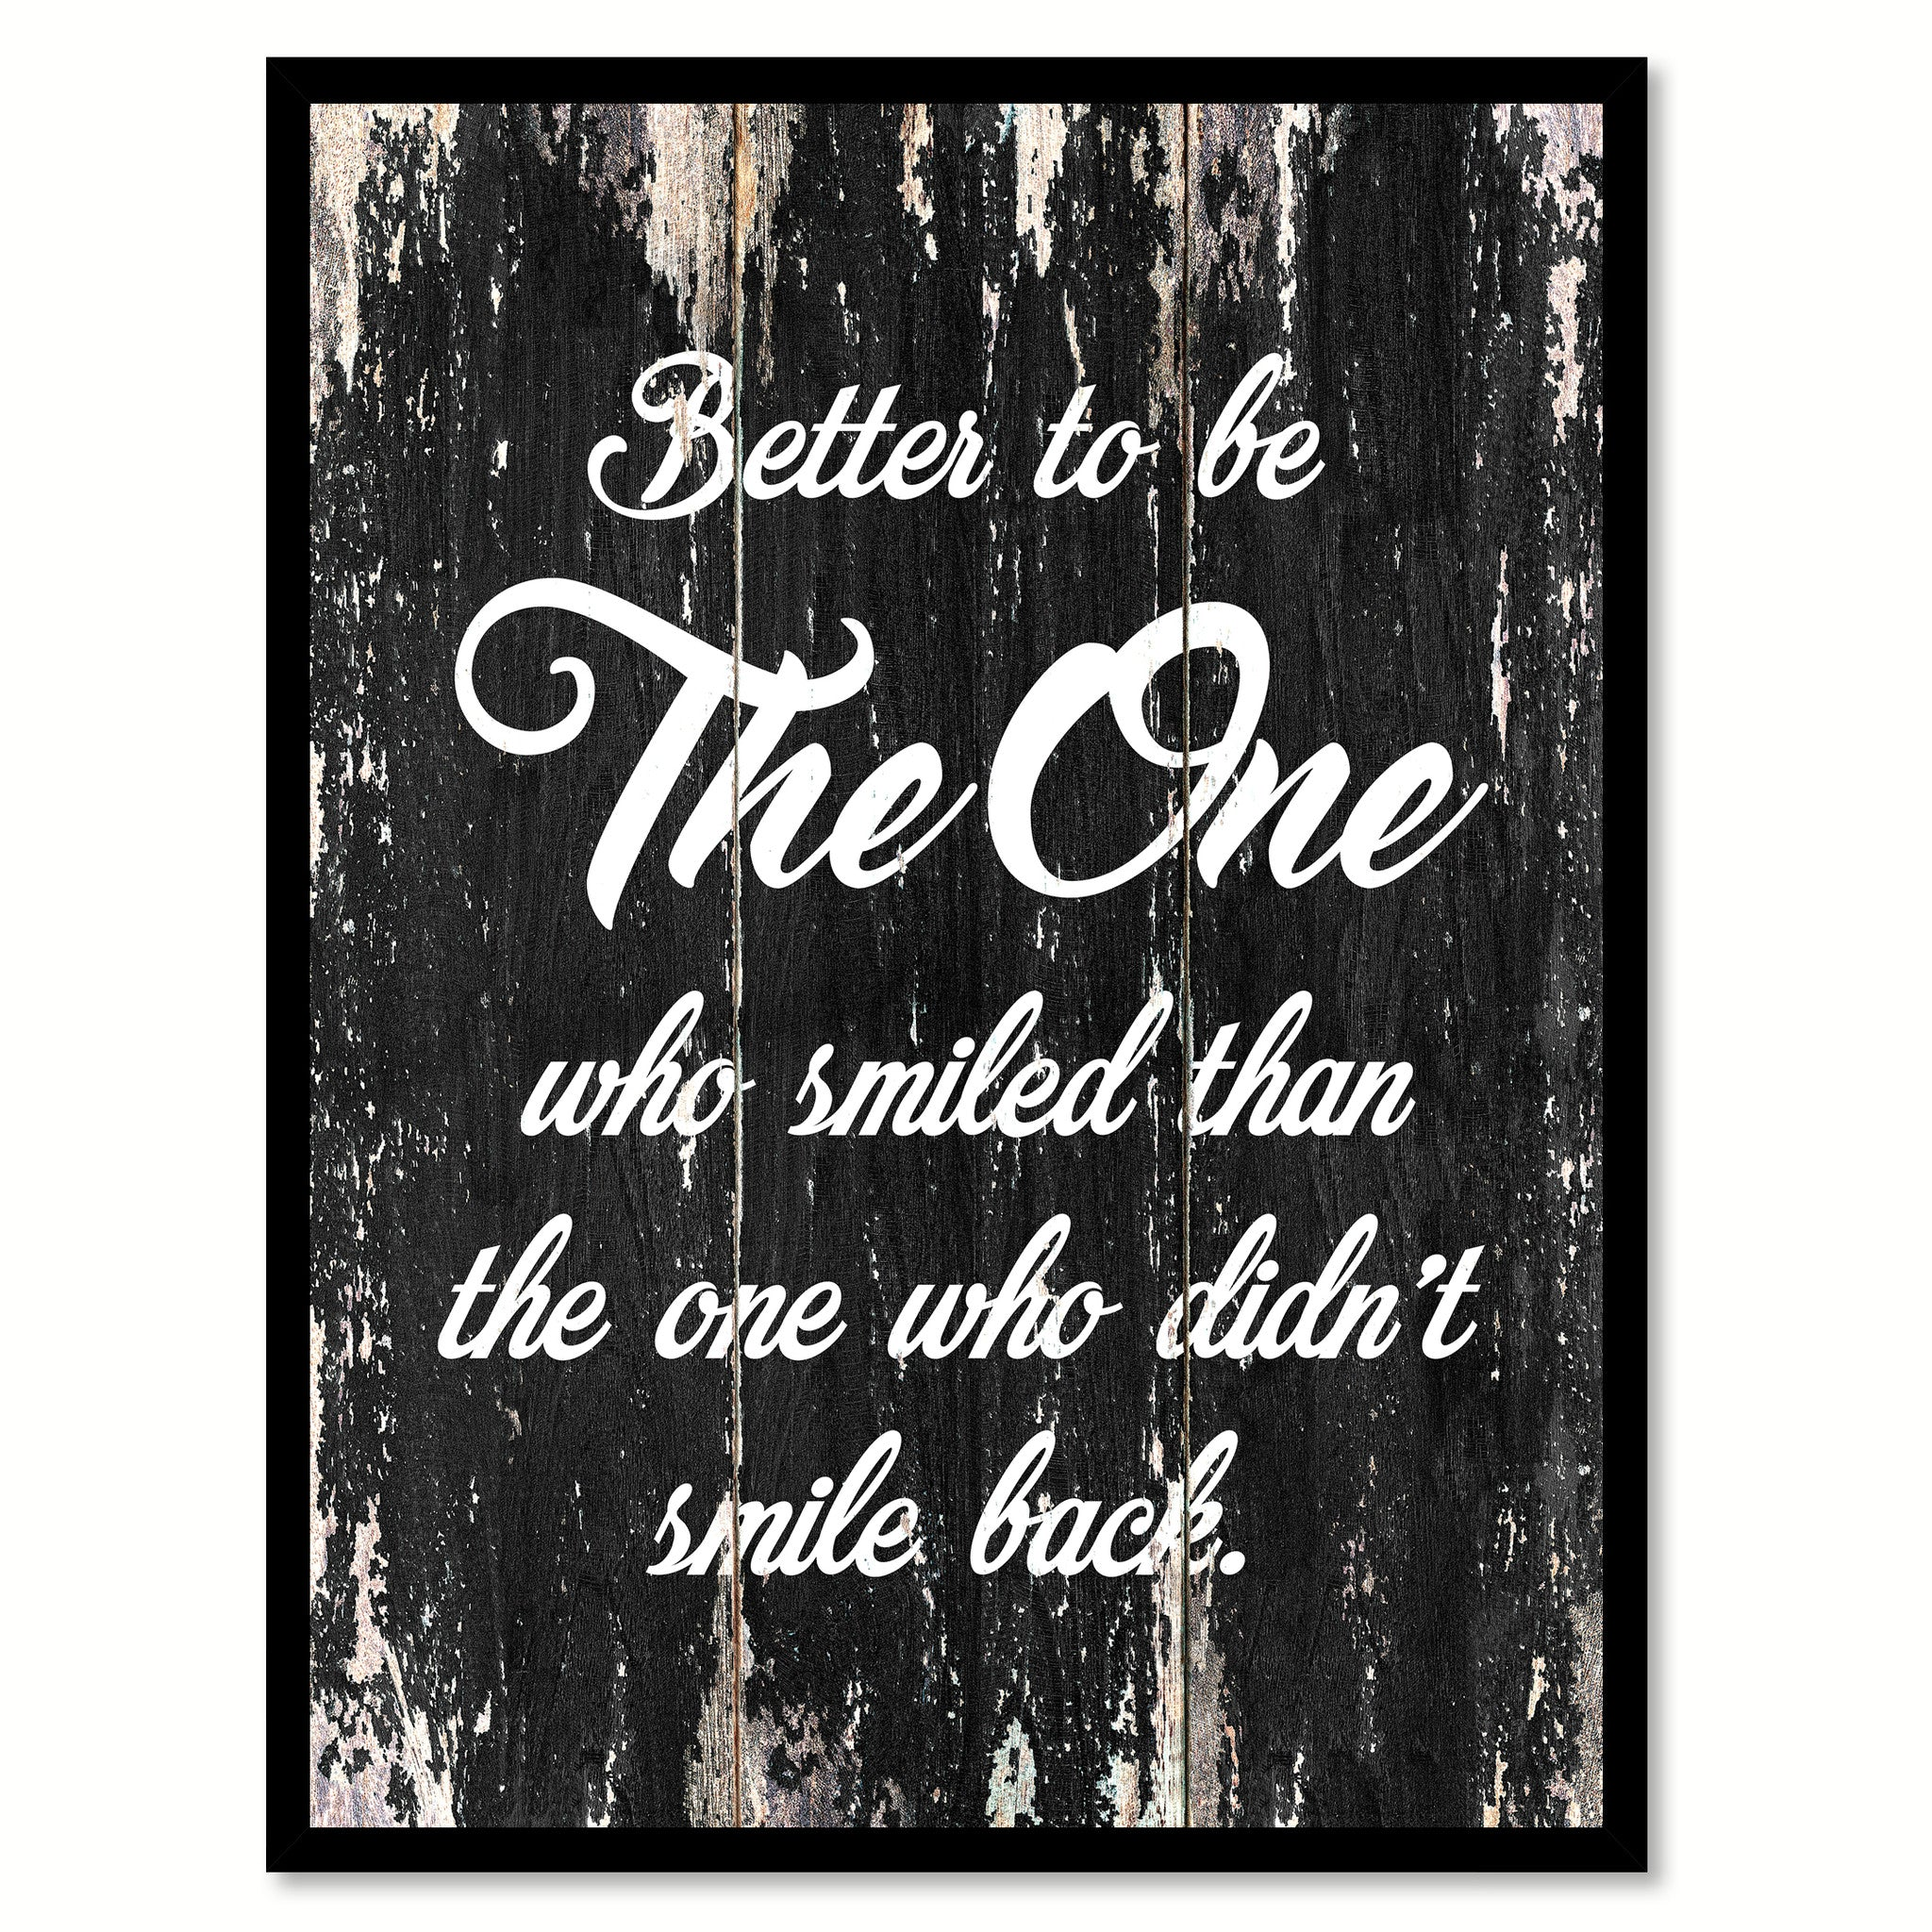 Better to be the one who shmiled than the one who didn't smile back Motivational Quote Saying Canvas Print with Picture Frame Home Decor Wall Art